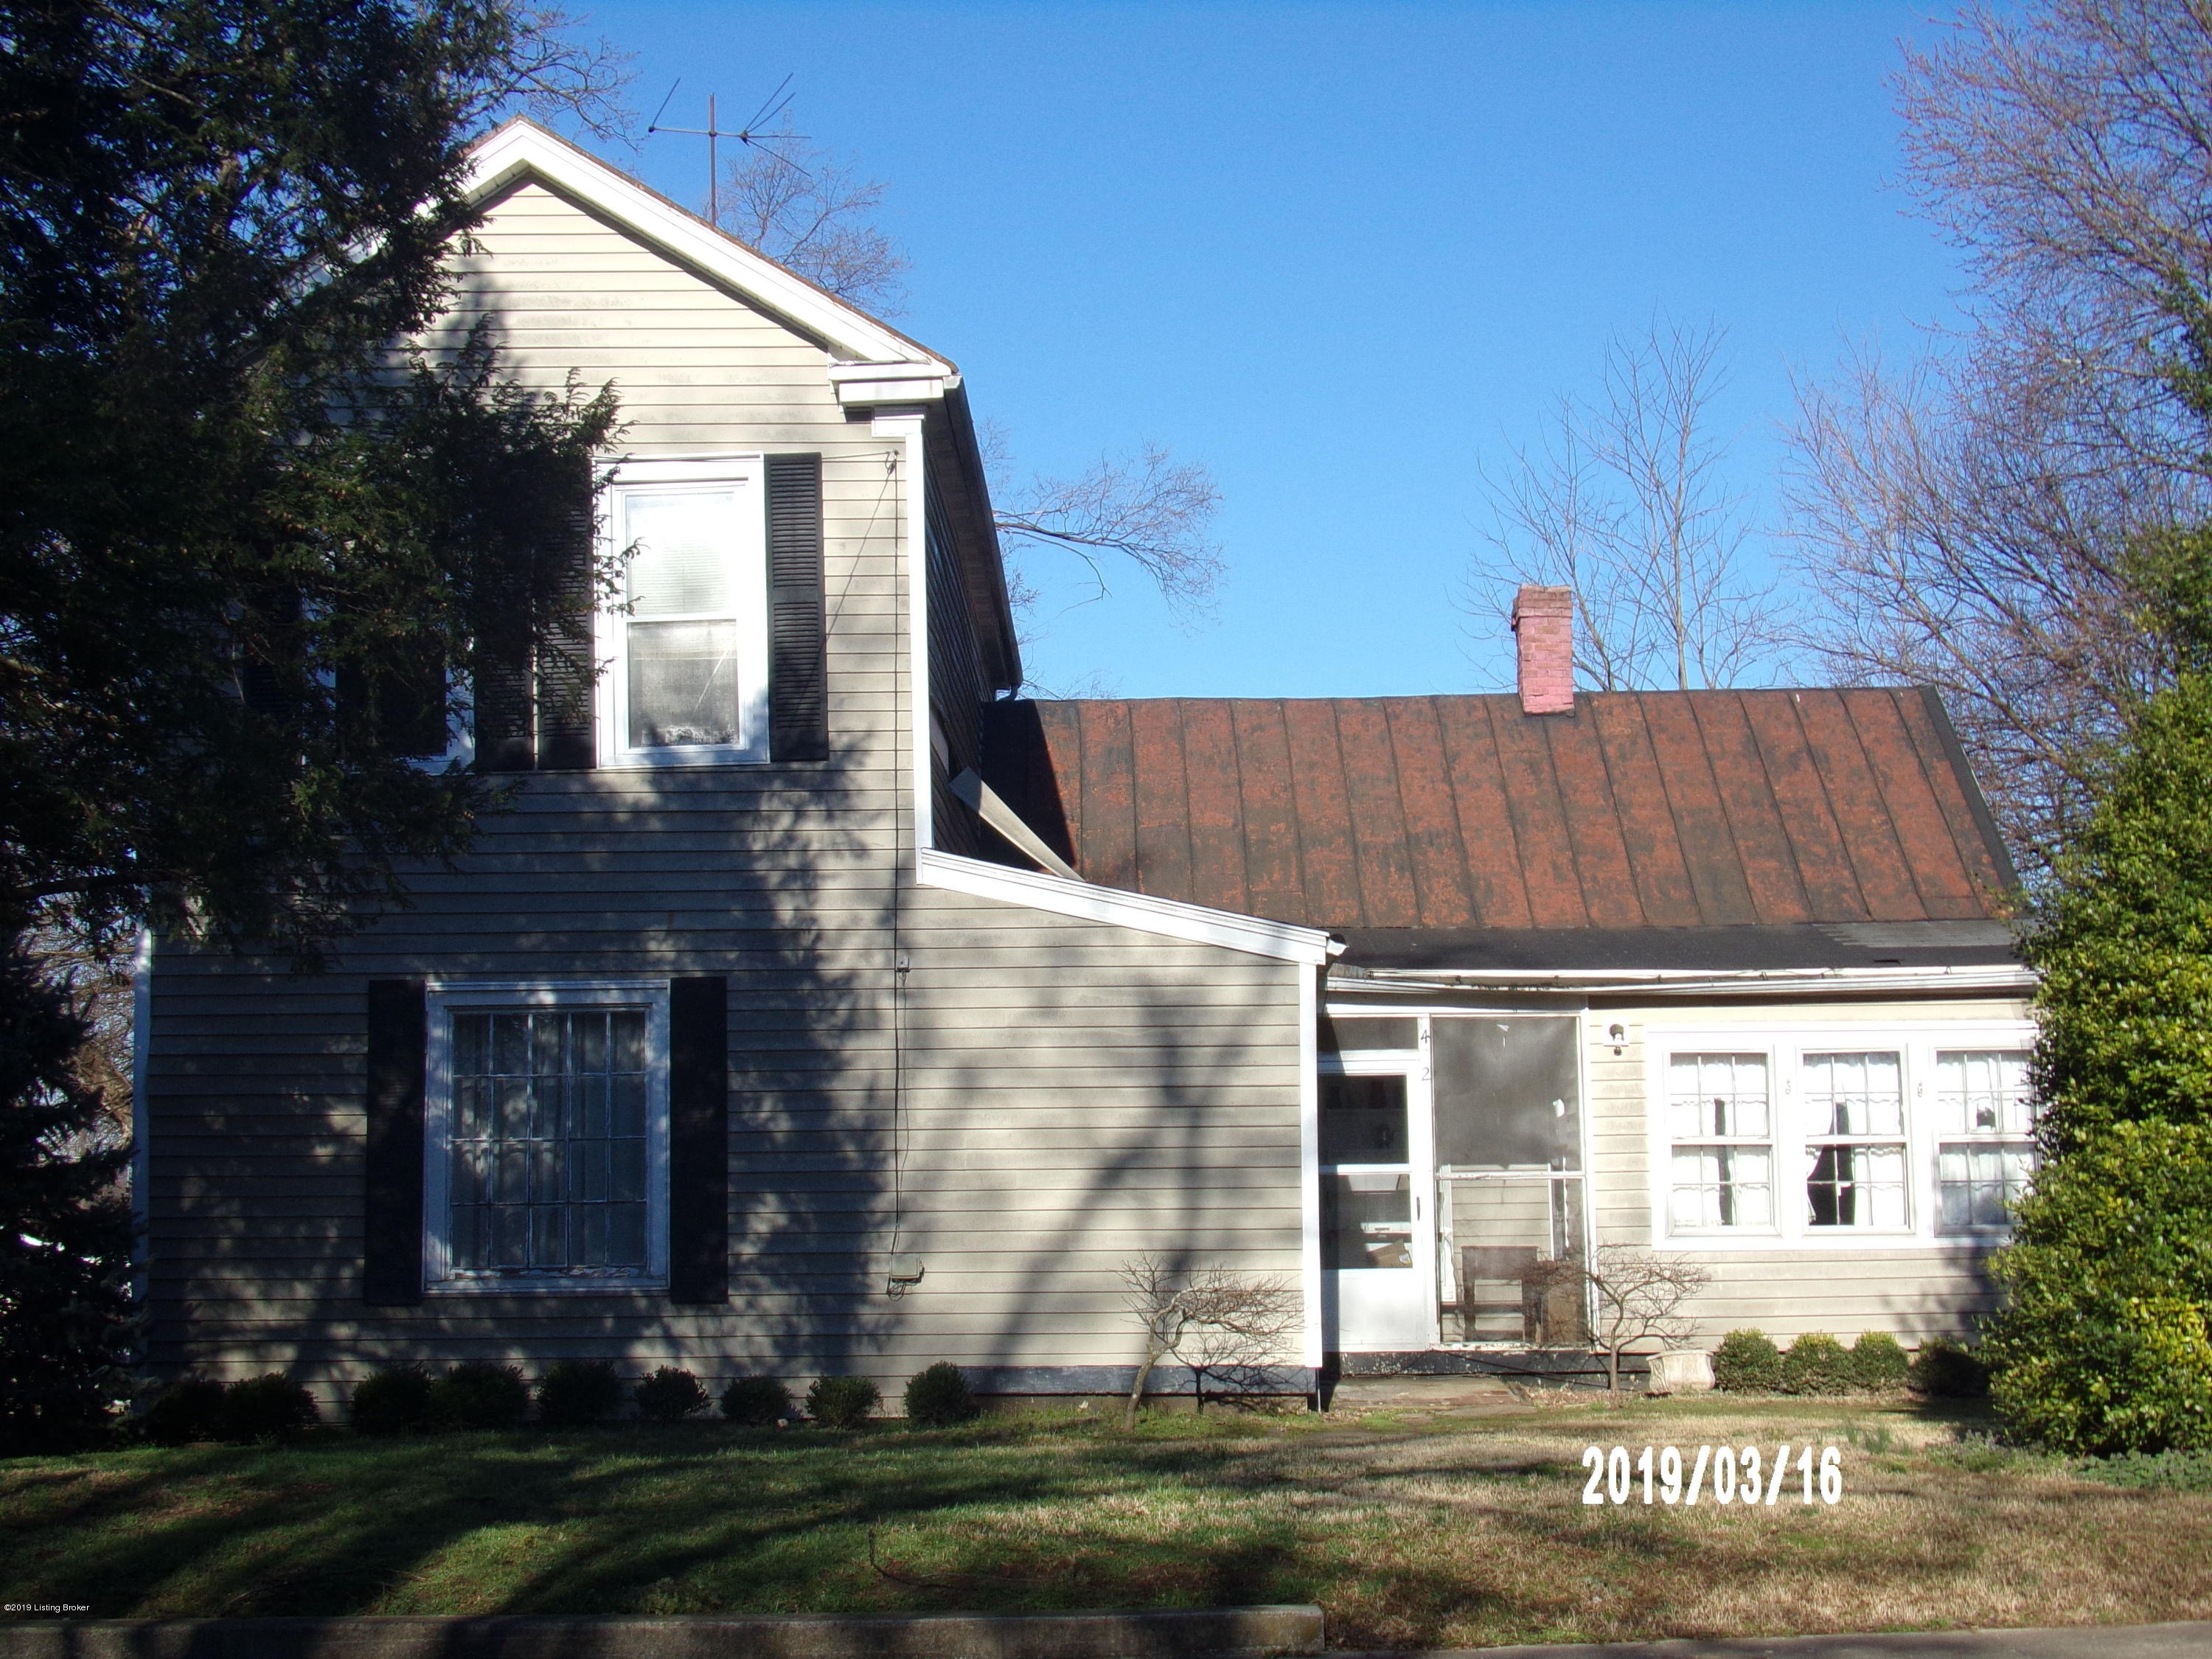 402 4th St, Bardstown, Kentucky 40004, 4 Bedrooms Bedrooms, 8 Rooms Rooms,2 BathroomsBathrooms,Residential,For Sale,4th,1526917